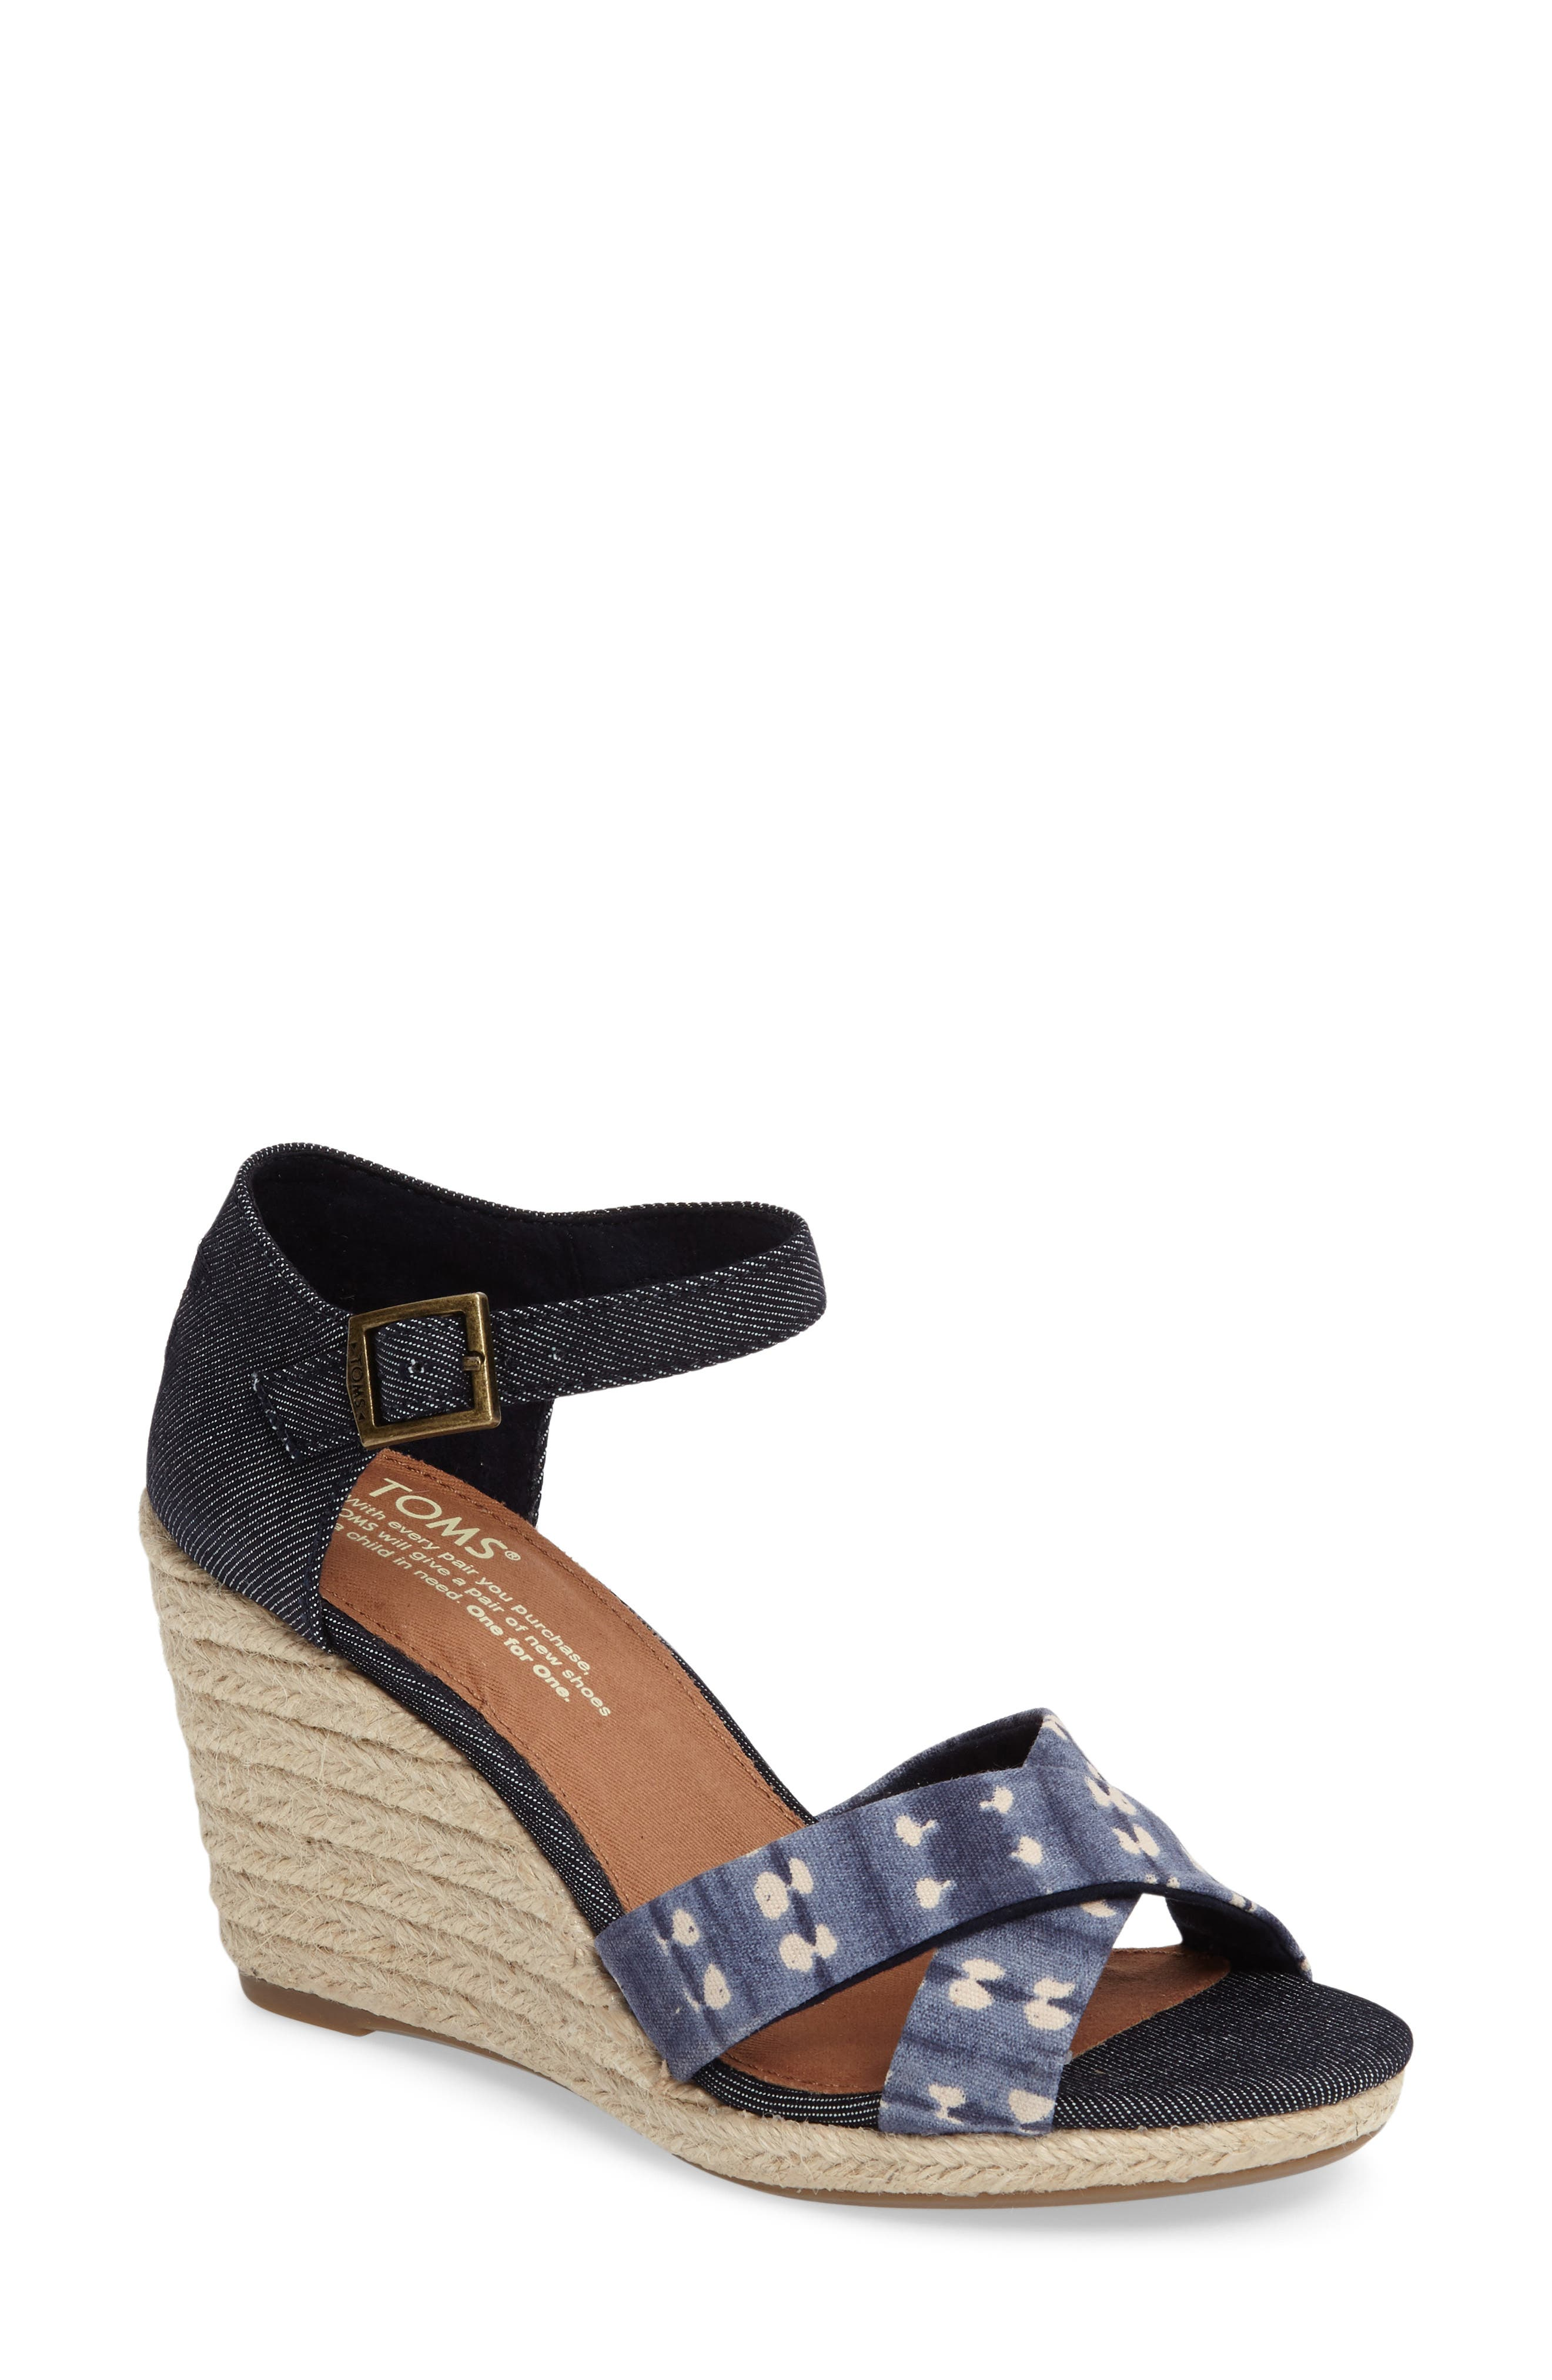 Main Image - TOMS Sienna Wedge Sandal (Women)